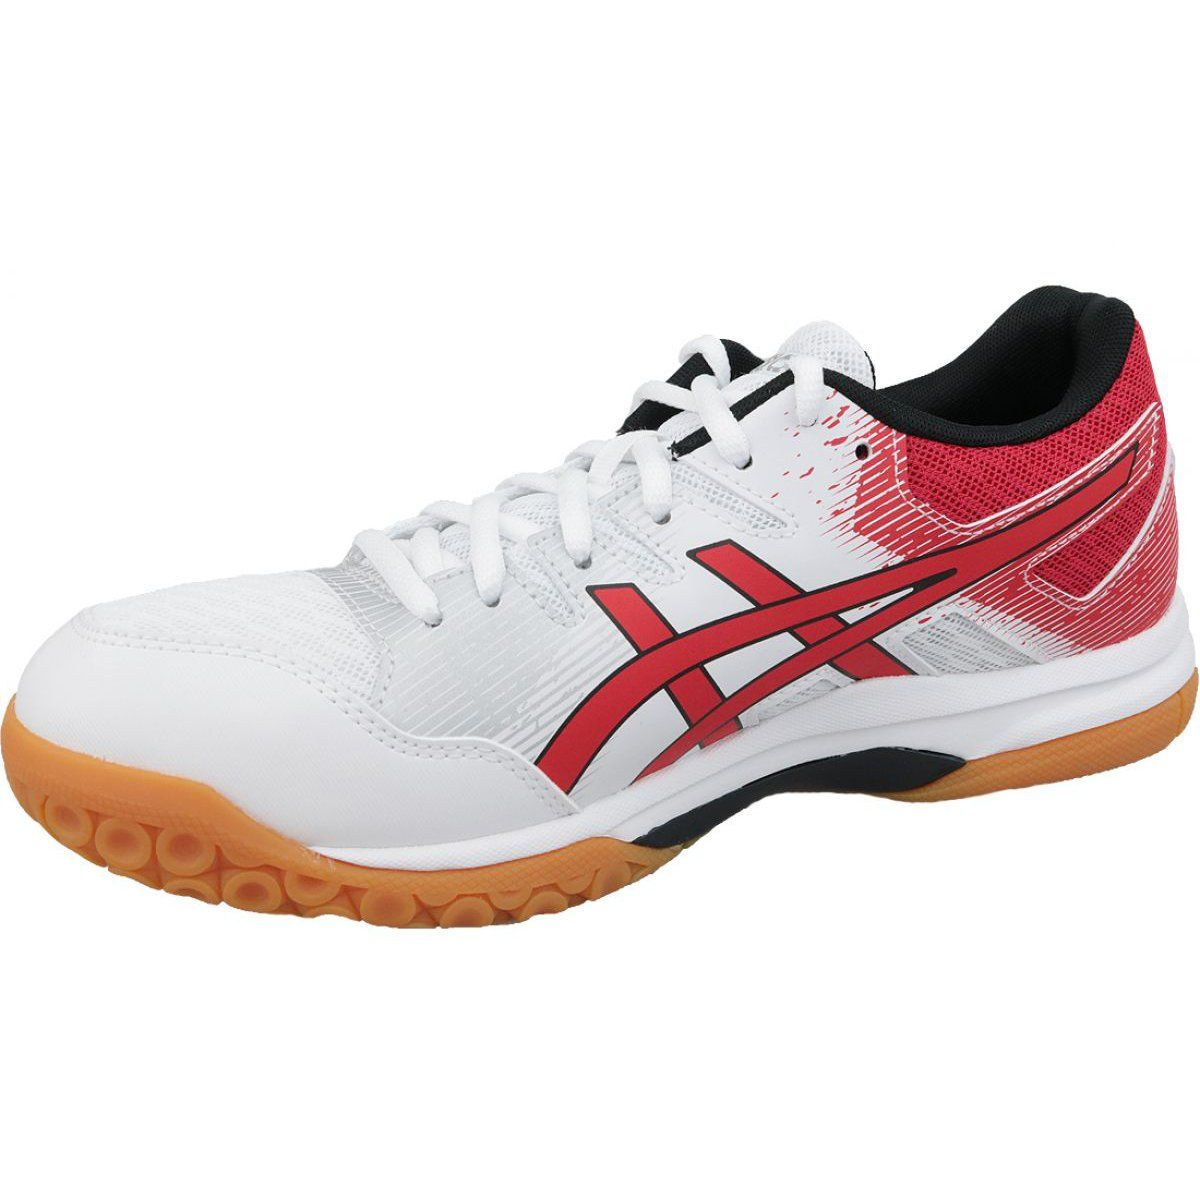 Asics Gel Rocket 9 M 1071a030 101 Volleyball Shoes White White Volleyball Shoes Asics Shoes